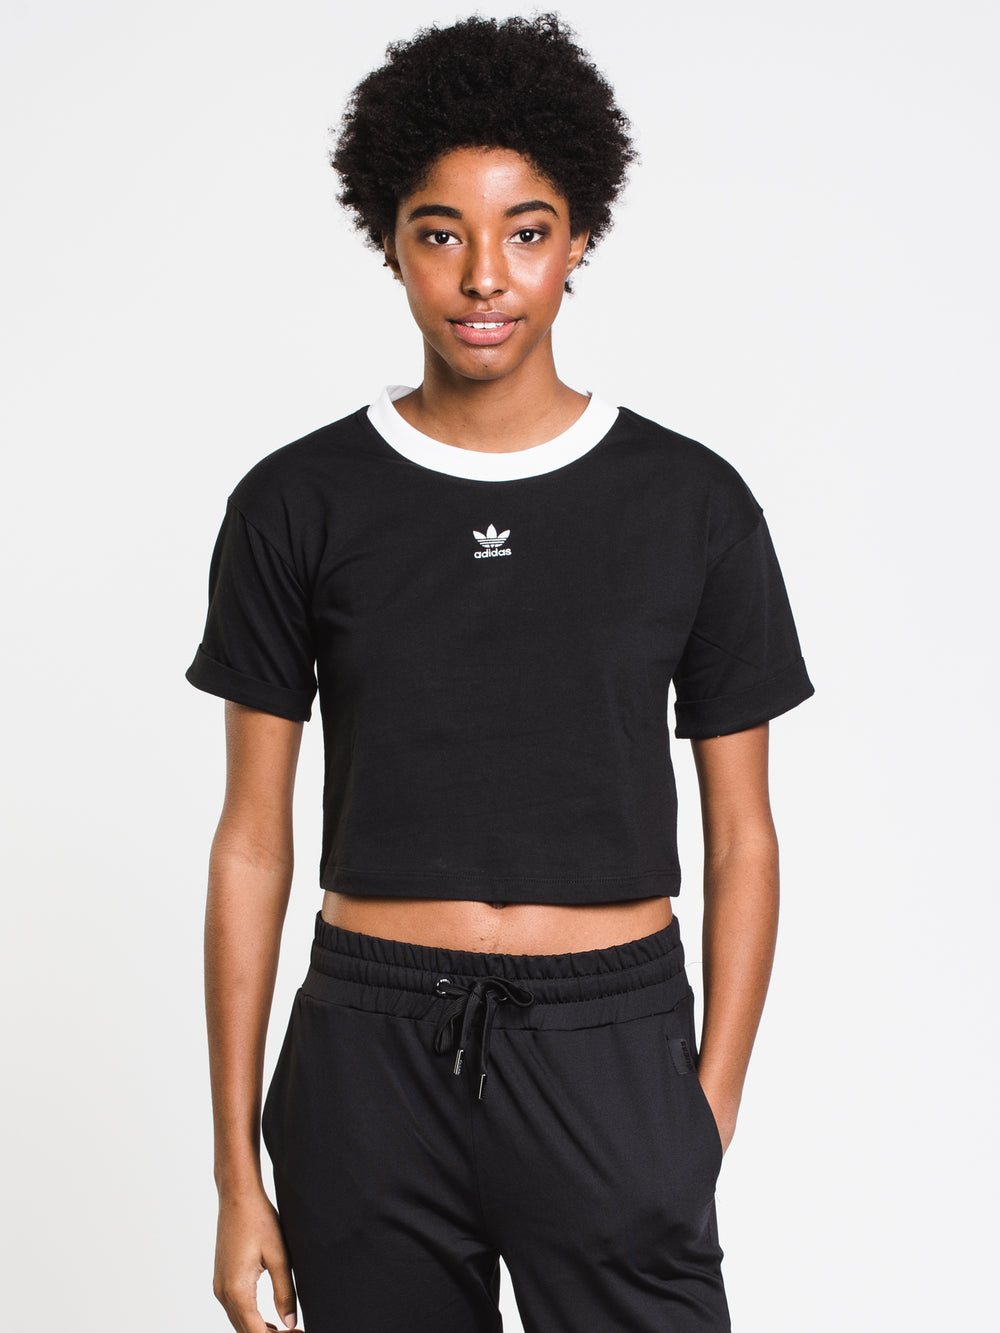 WOMENS CROP SHORT SLEEVE LOGO TEE - BLACK